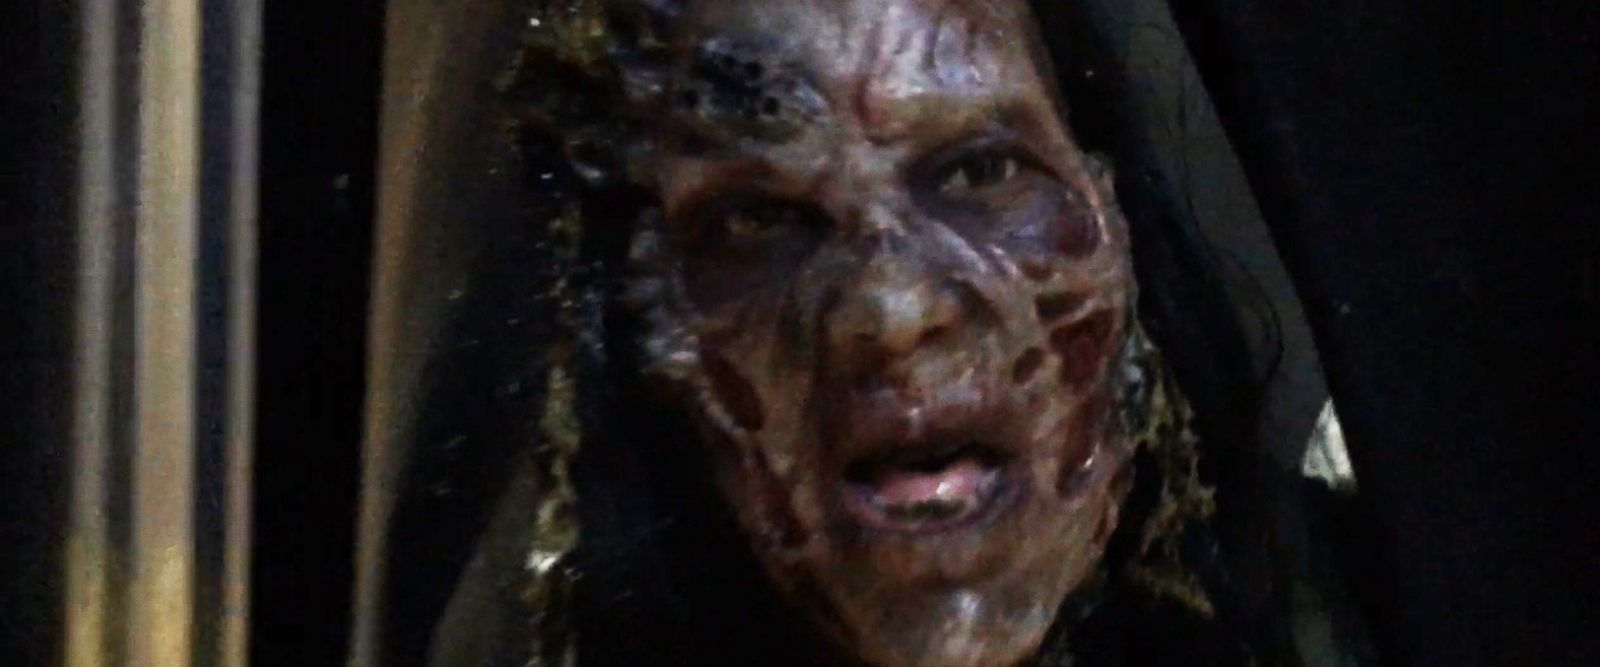 VIDEO: A look at 'The Walking Dead' exhibit at Comic-Con 2017